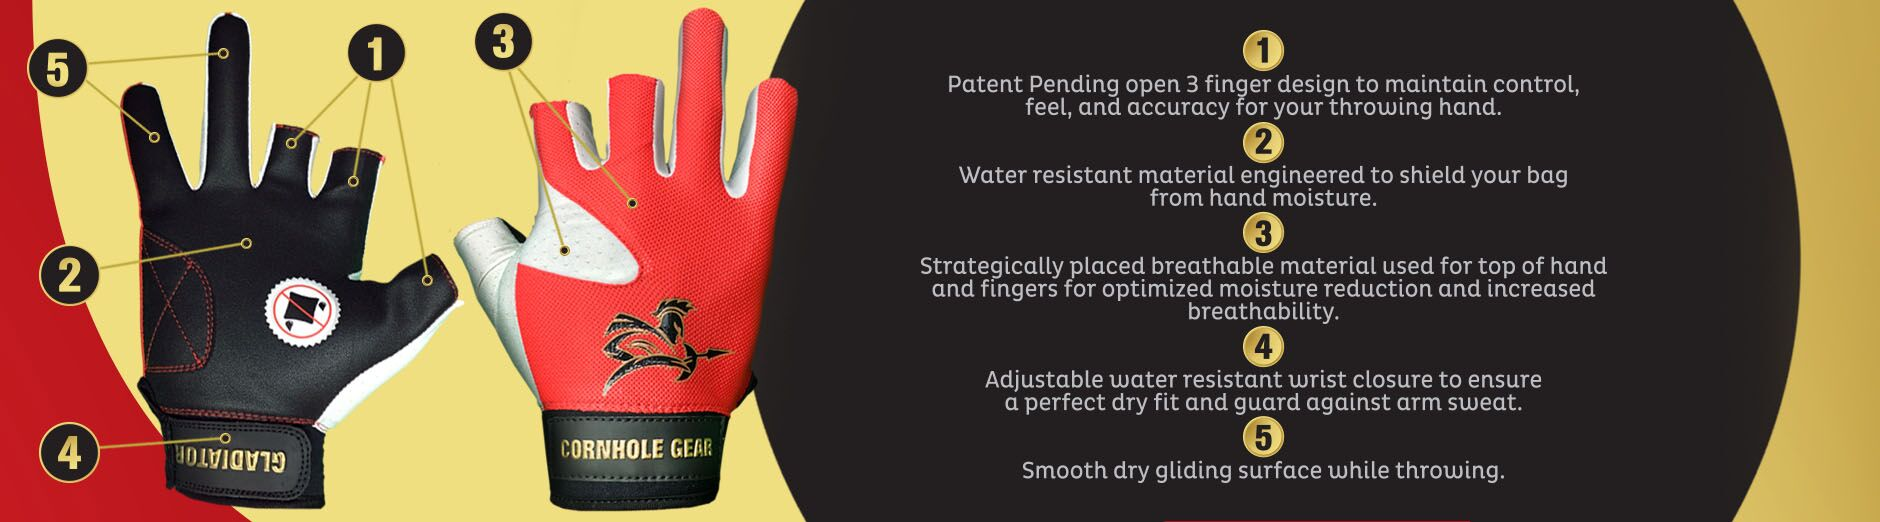 Top 5 advantages to our gloves